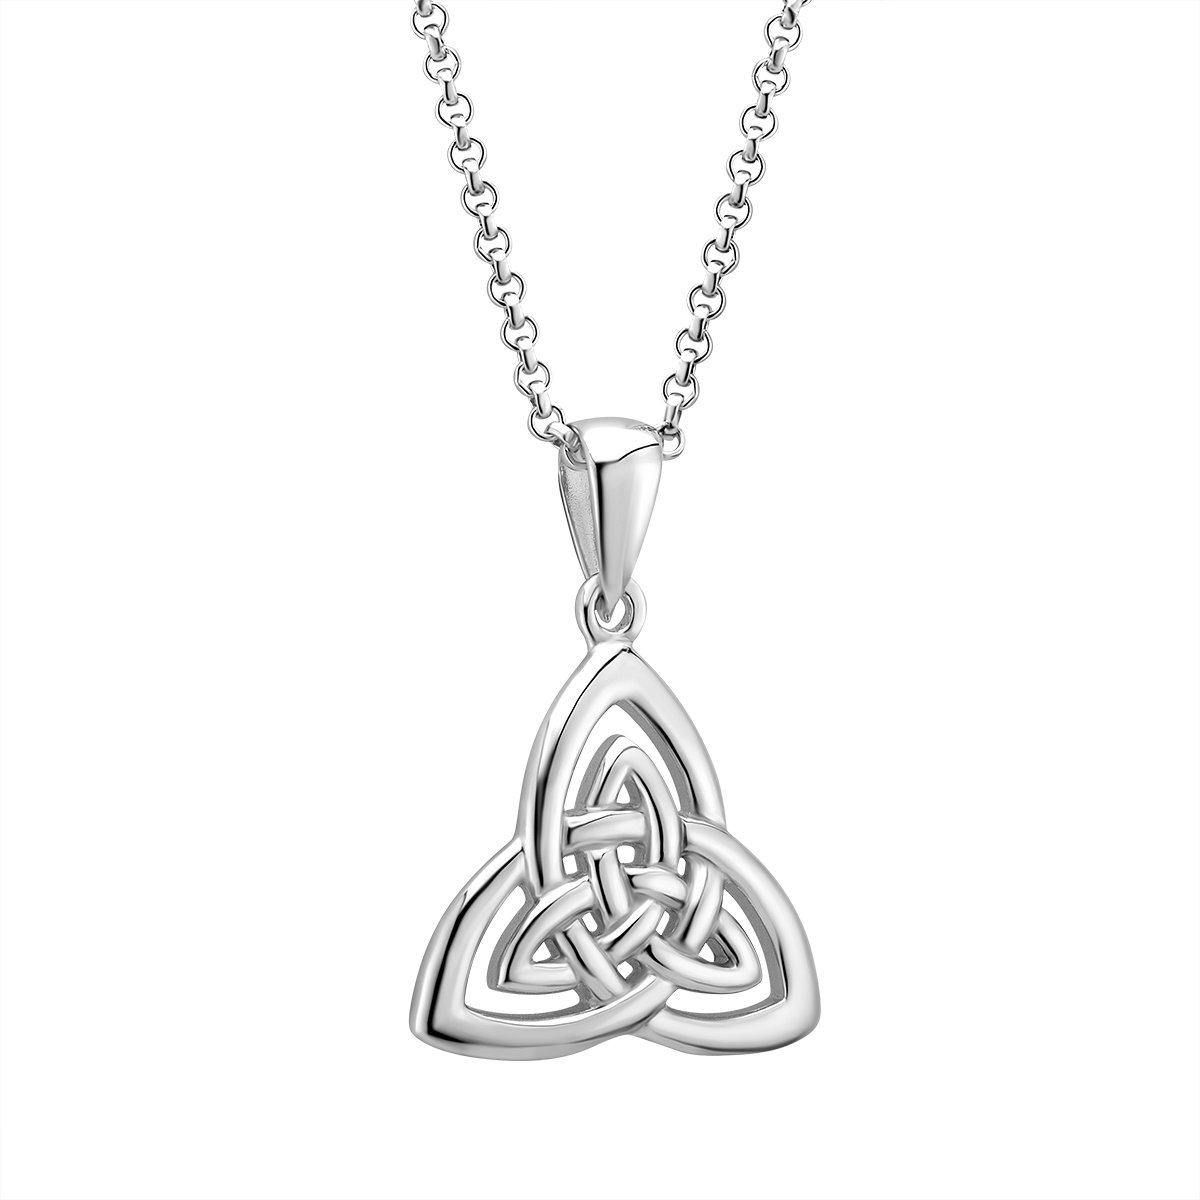 Irish Trinity Knot Necklace Sterling Silver Weave Pattern Made in Co. Dublin, Ireland